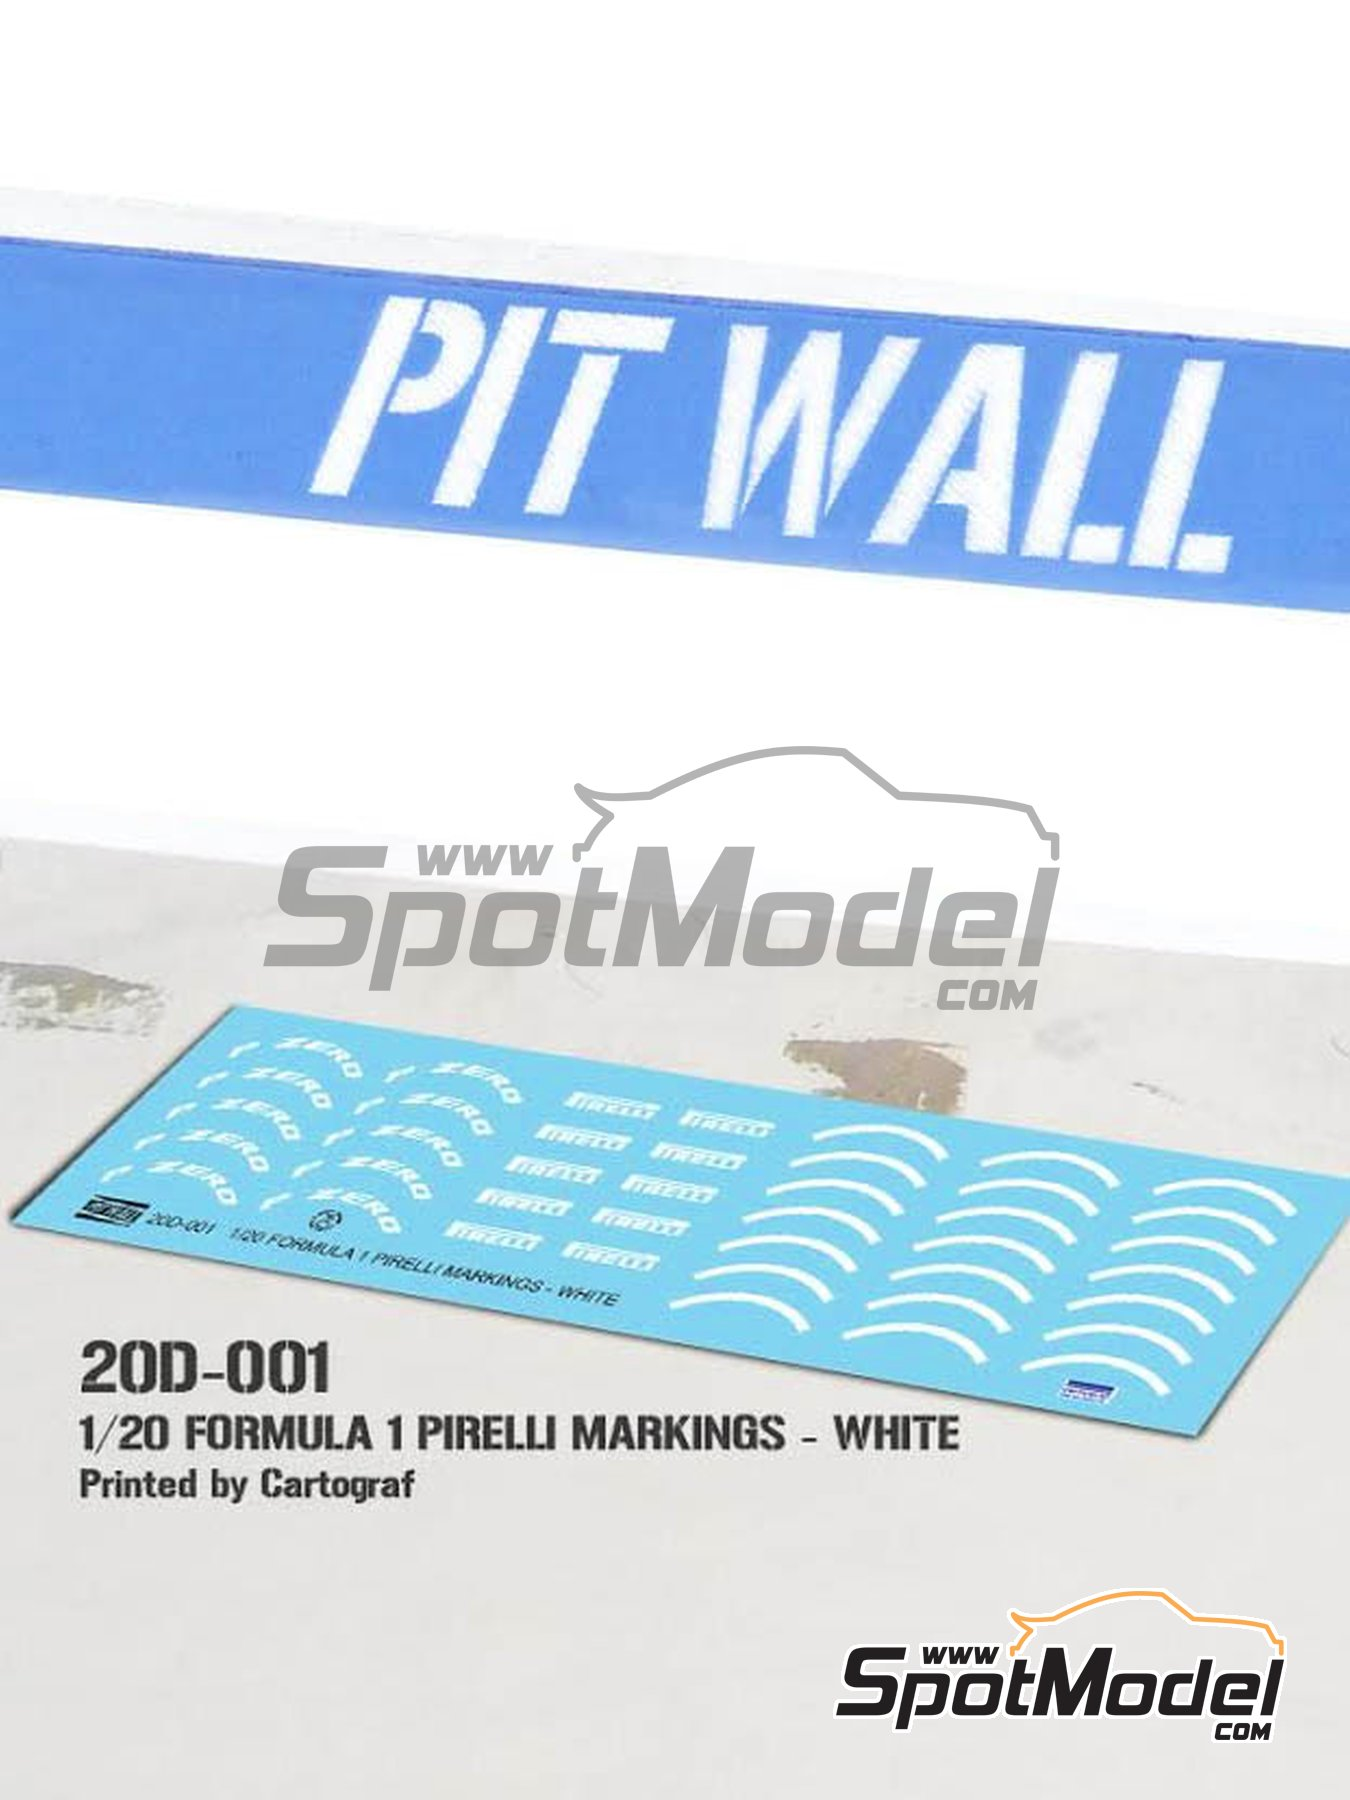 White Pirelli P Zero Formula 1 | Logotypes in 1/20 scale manufactured by Pit Wall (ref. 20D-001) image